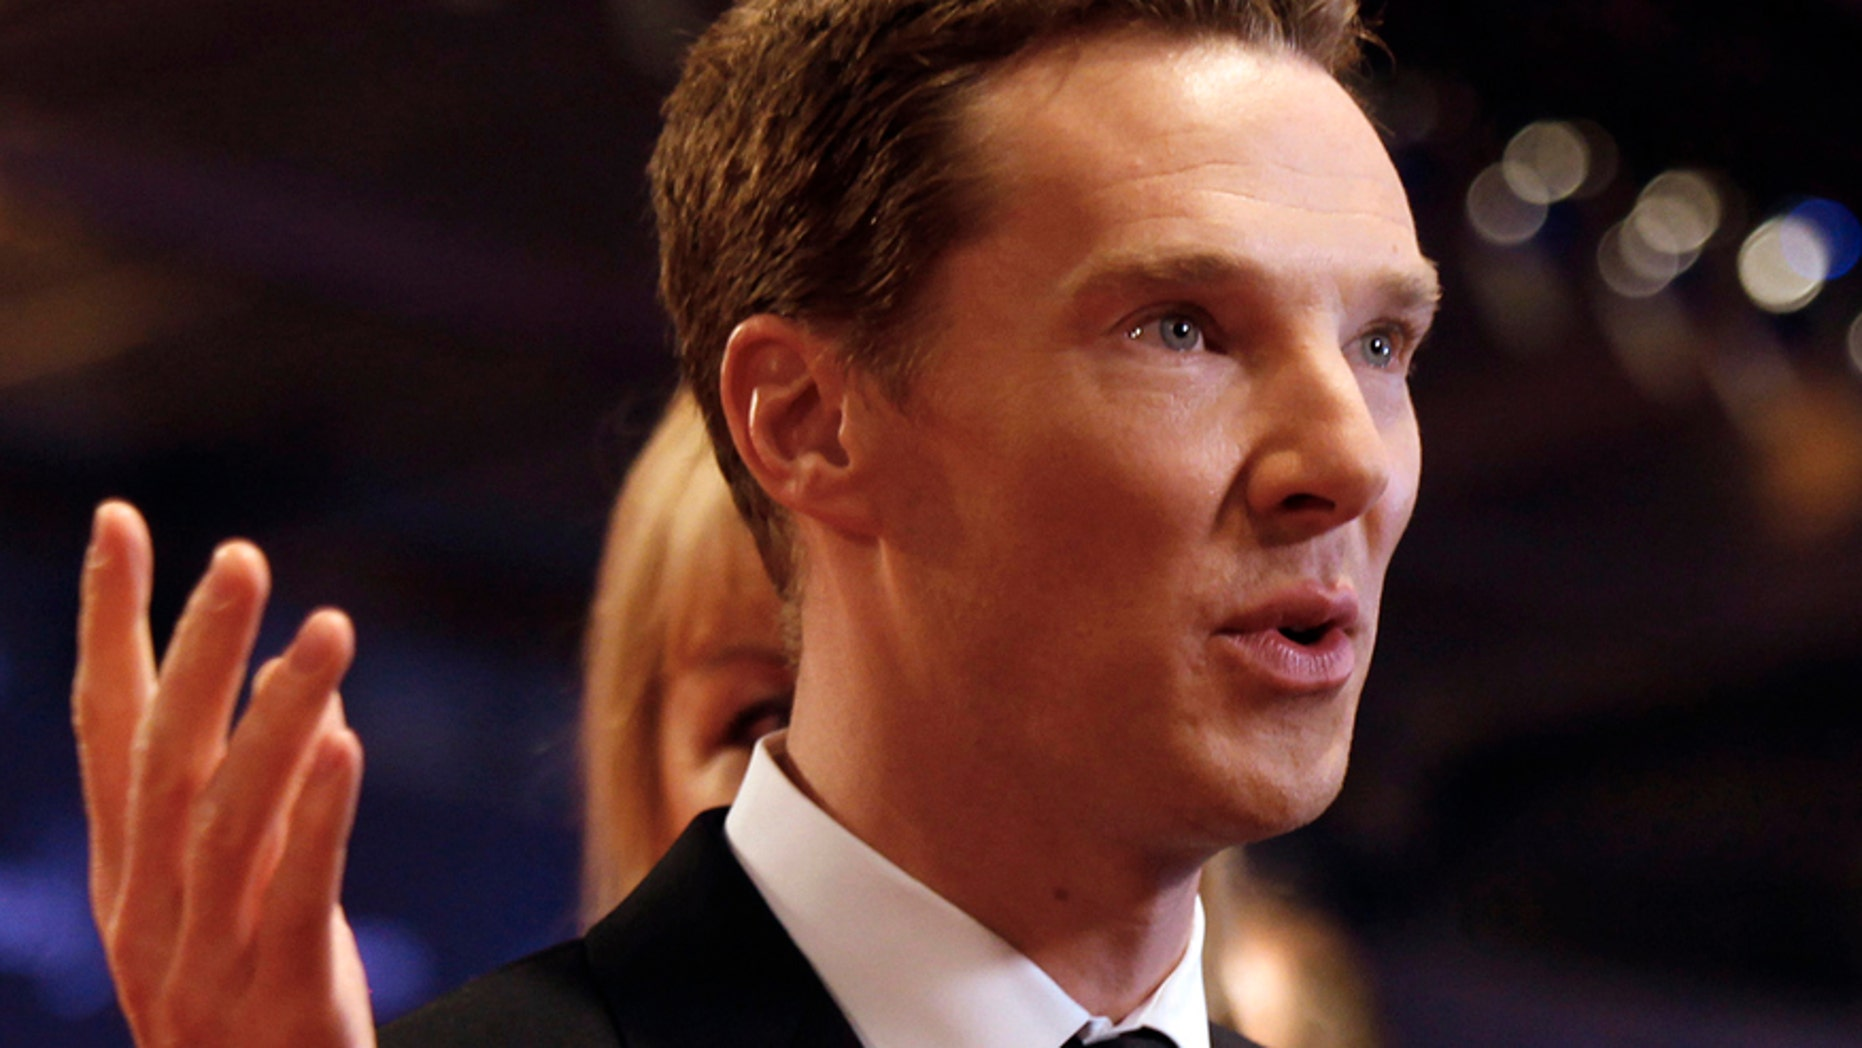 In this Wednesday, April 15, 2015 file photo, British actor Benedict Cumberbatch arrives to host the Laureus World Sports Awards in Shanghai, China.